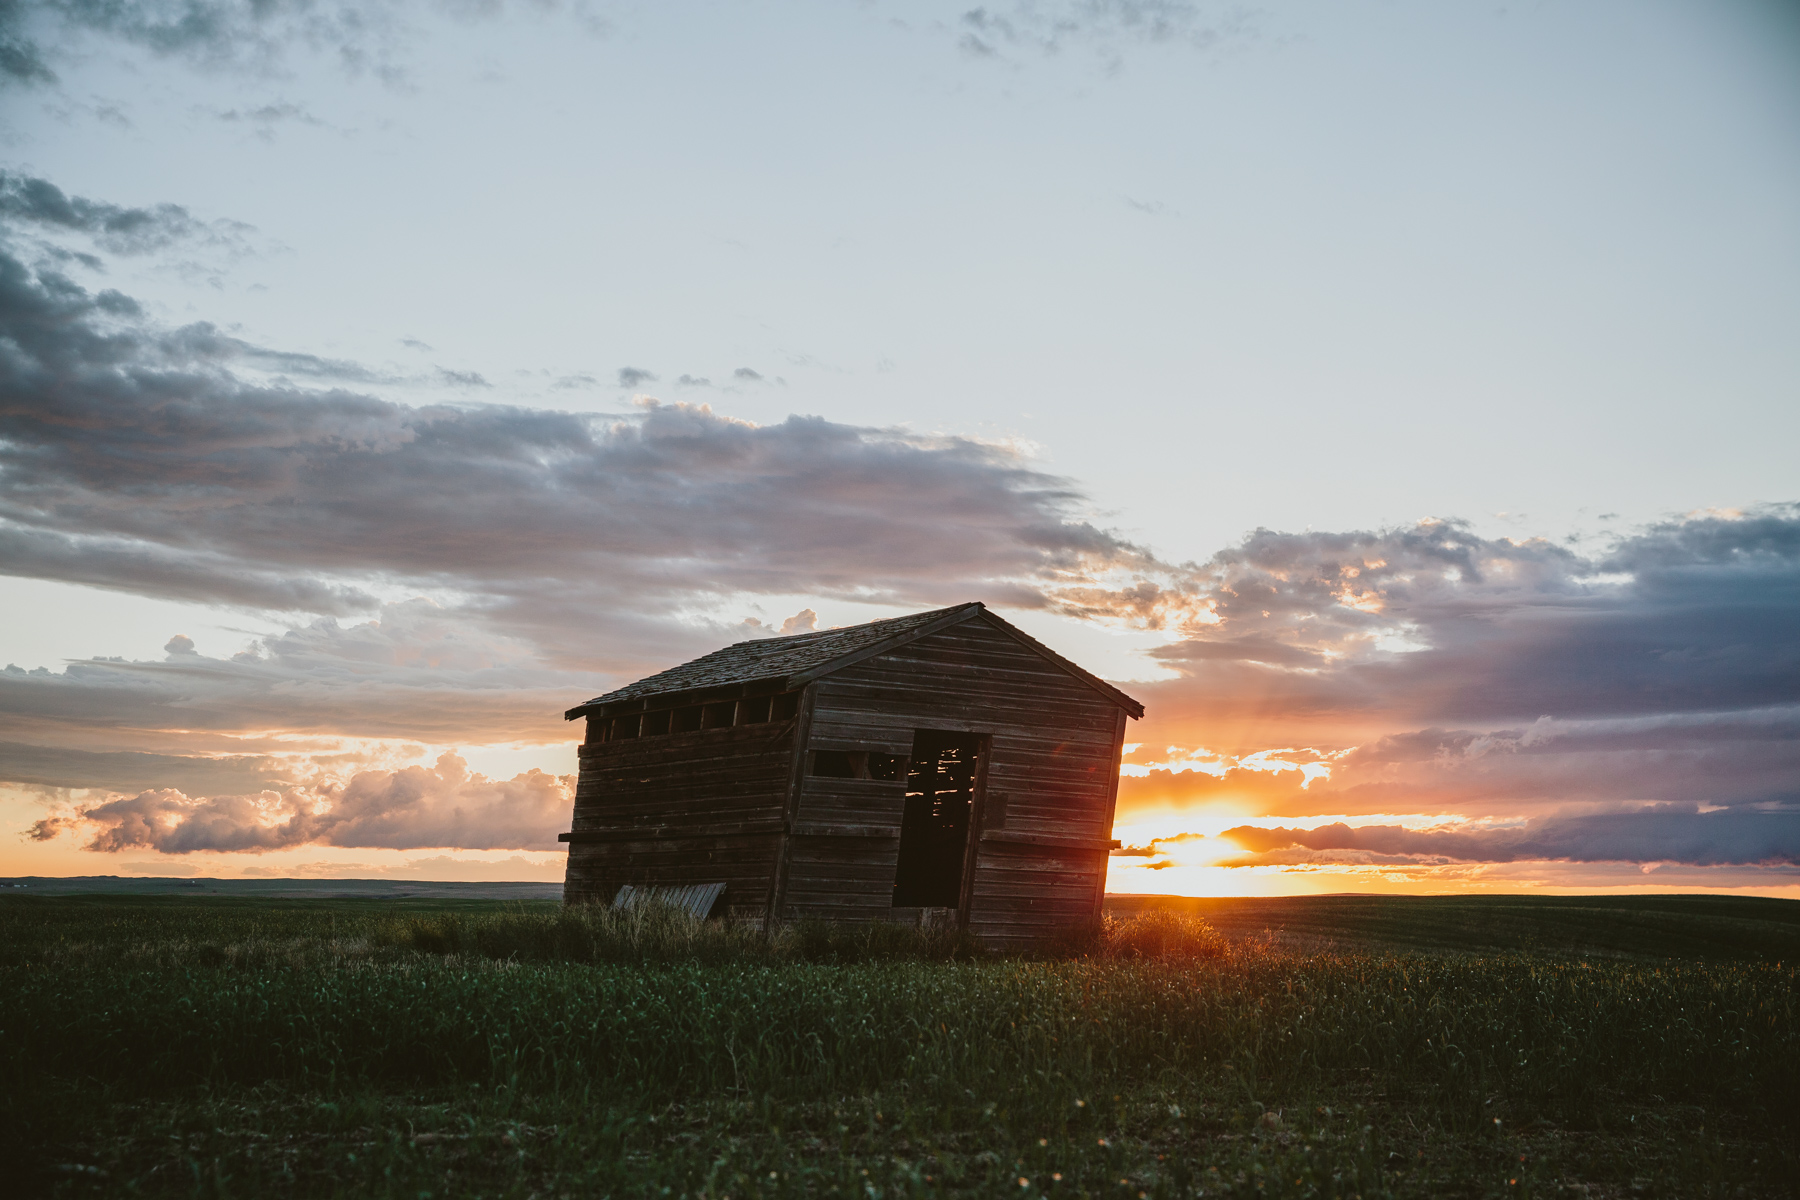 alberta-landscape-lifestyle-photography-mikeseehagel-10